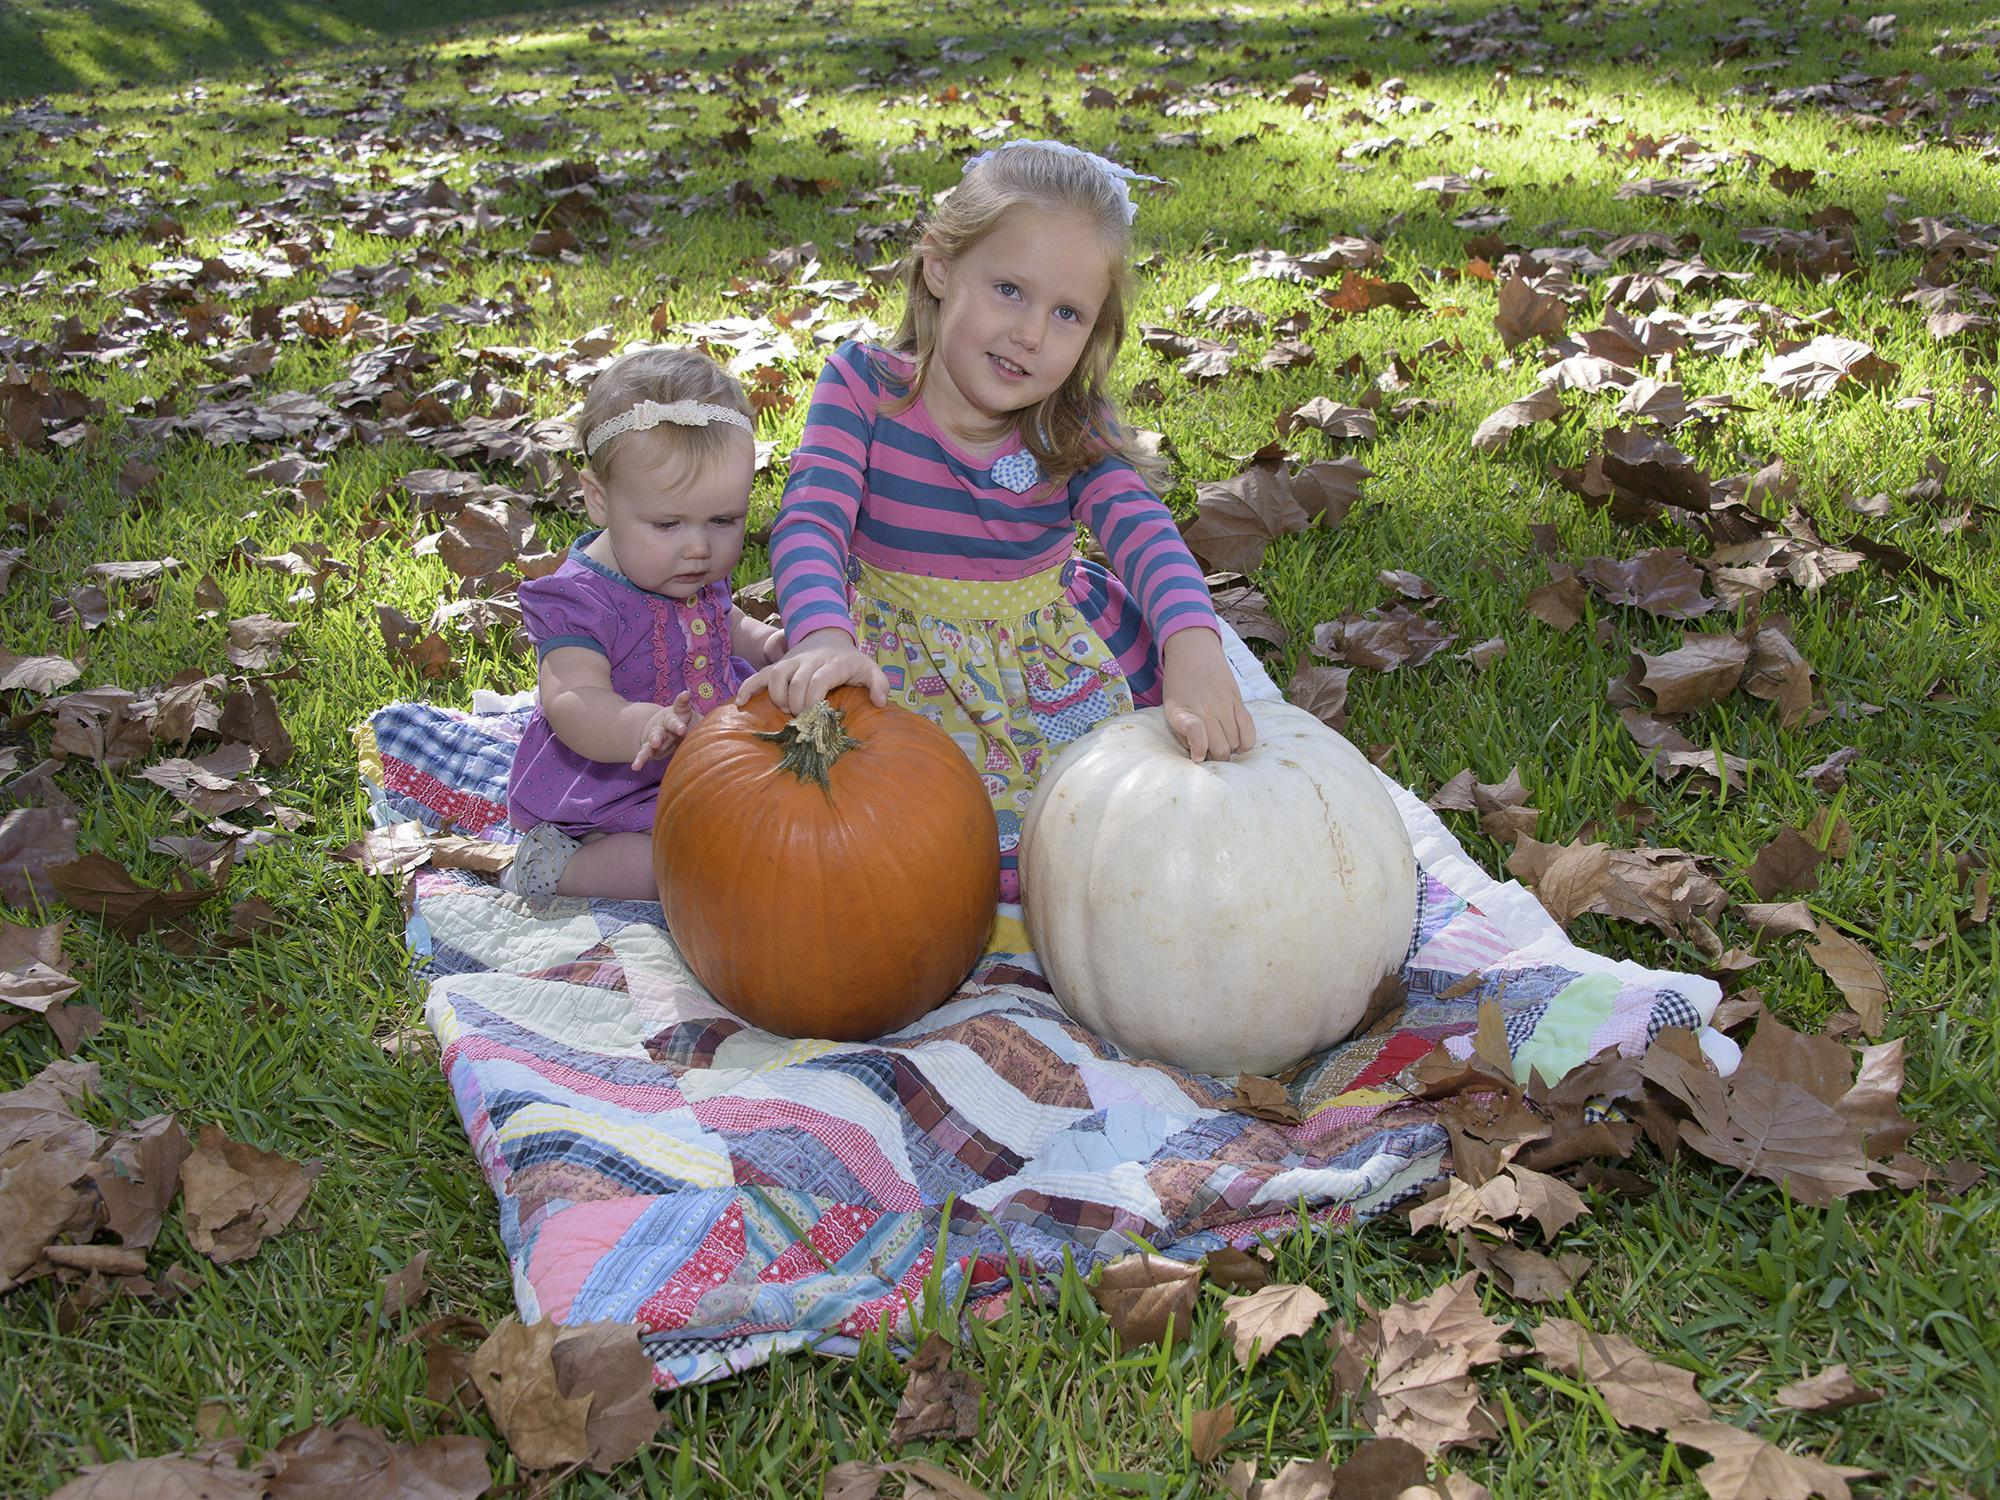 Two young girls sit on a colorful quilt among leaves in the grass as they play with a white and an orange pumpkin.